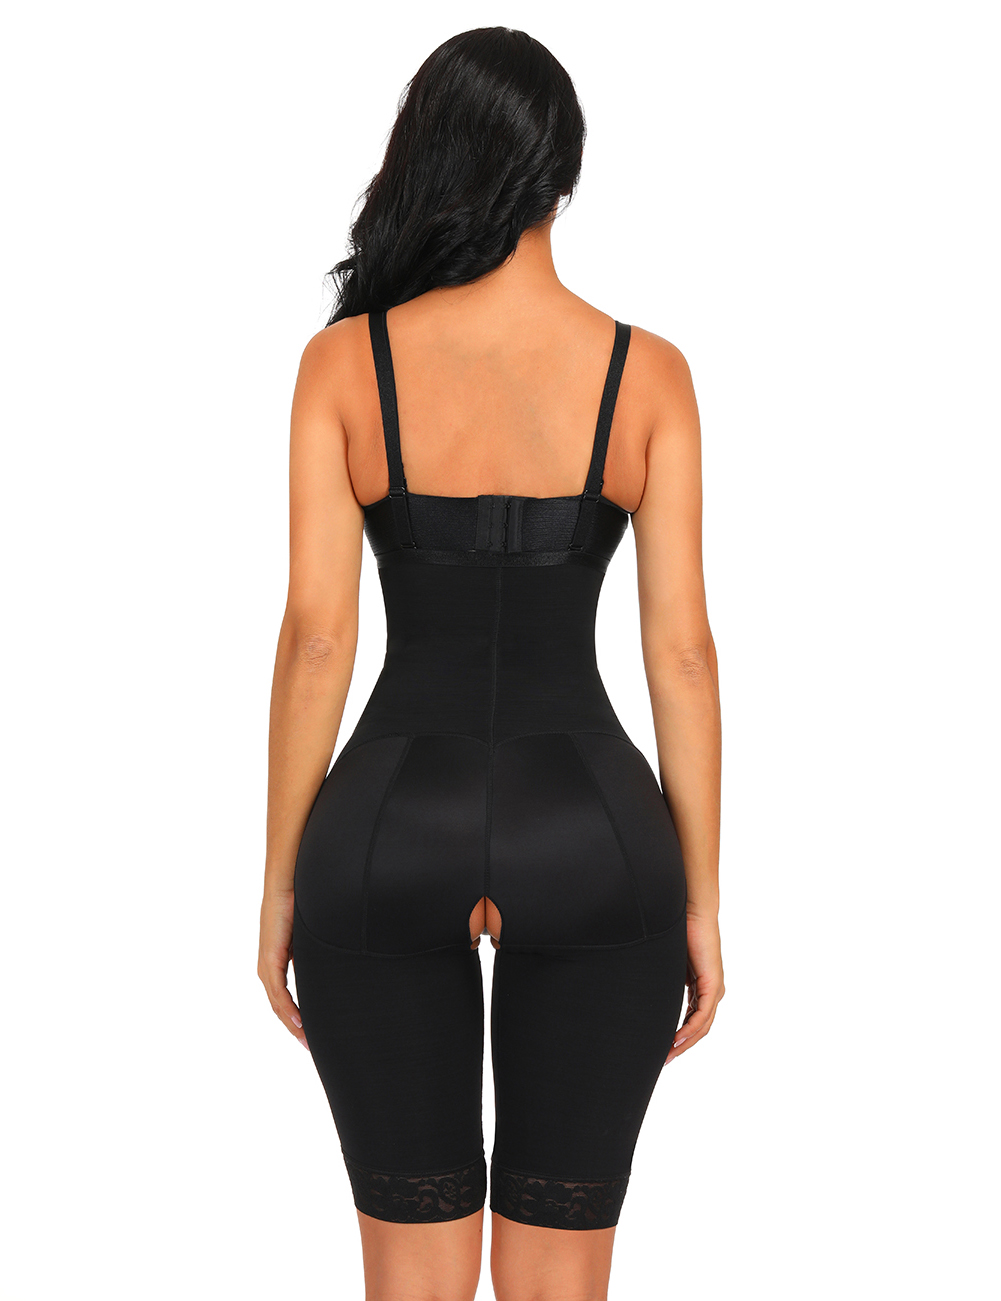 //cdn.affectcloud.com/hexinfashion/upload/imgs/Shaper/Body_Shaper/B180123-BK1/B180123-BK1-201911055dc11f36e19c5.jpg